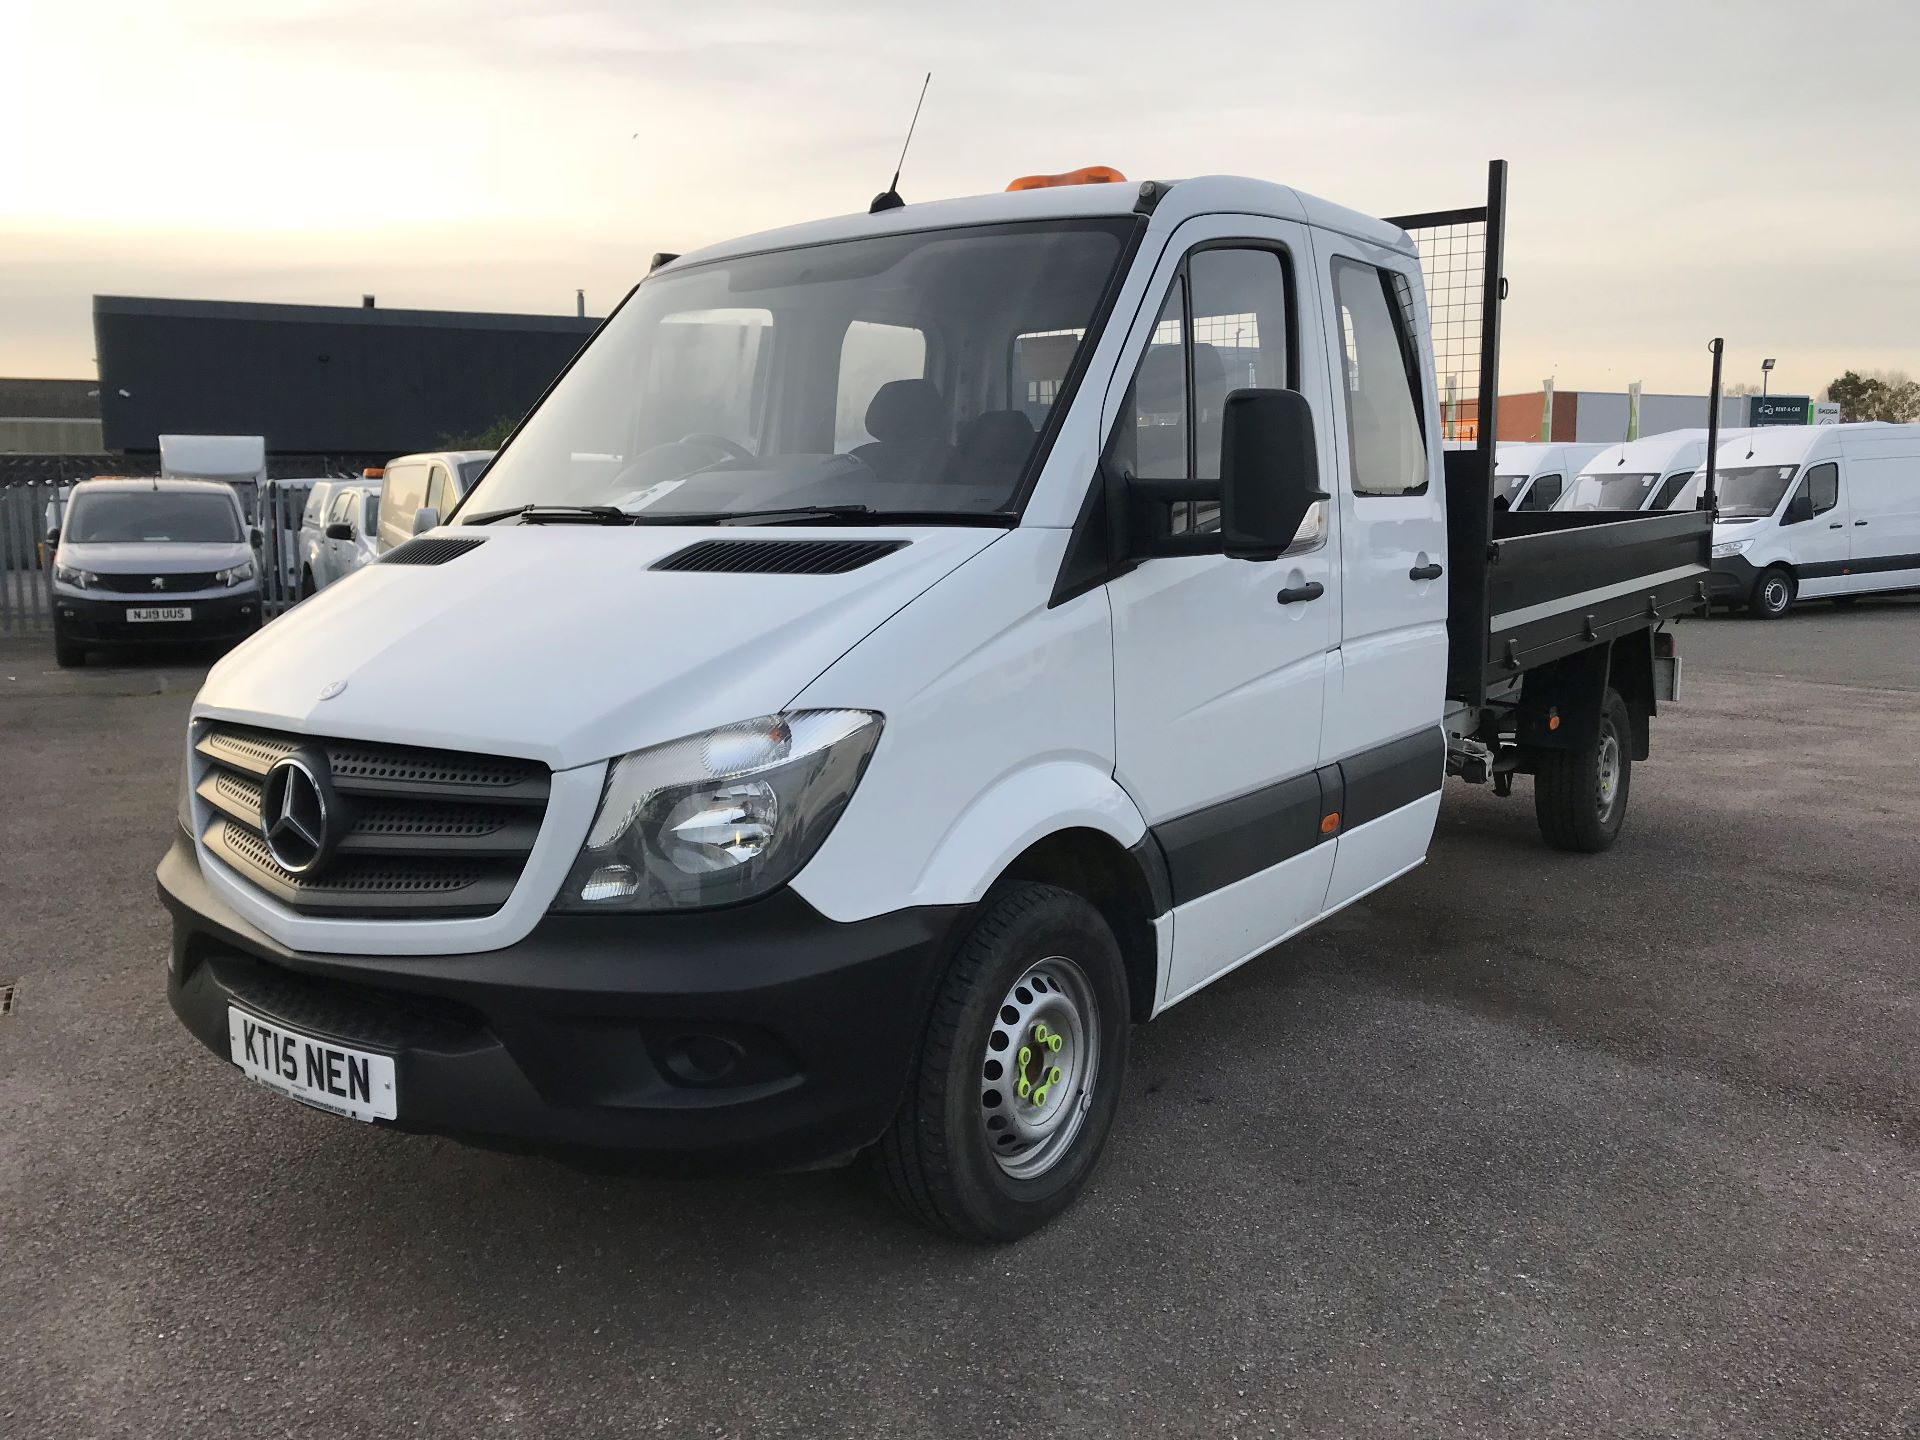 2015 Mercedes-Benz Sprinter  313 LONG CREW CAB TIPPER EURO 5 (KT15NEN) Image 2